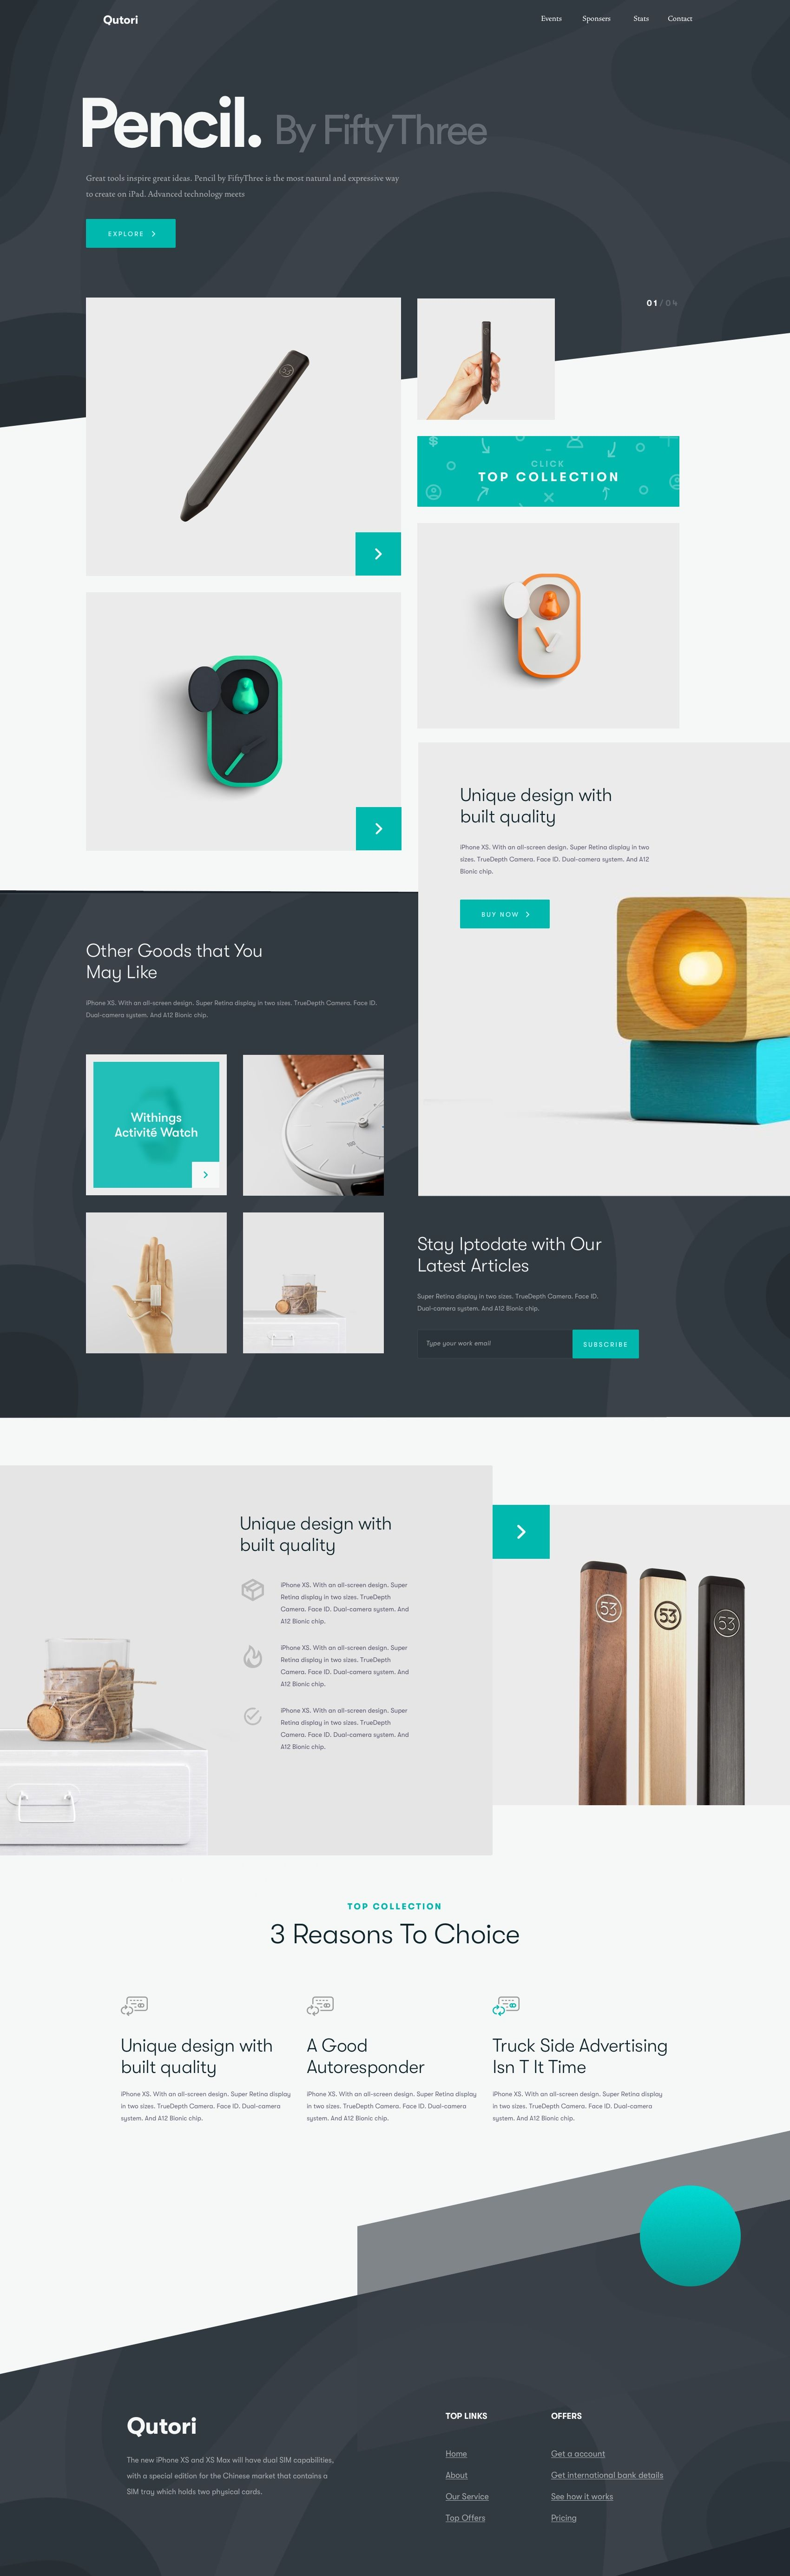 Pencil Product Landing Page Web Design 2018 By Shekh Al Raihan Branding And Web Design Corporate W Portfolio Web Design Best Landing Page Design Web Design